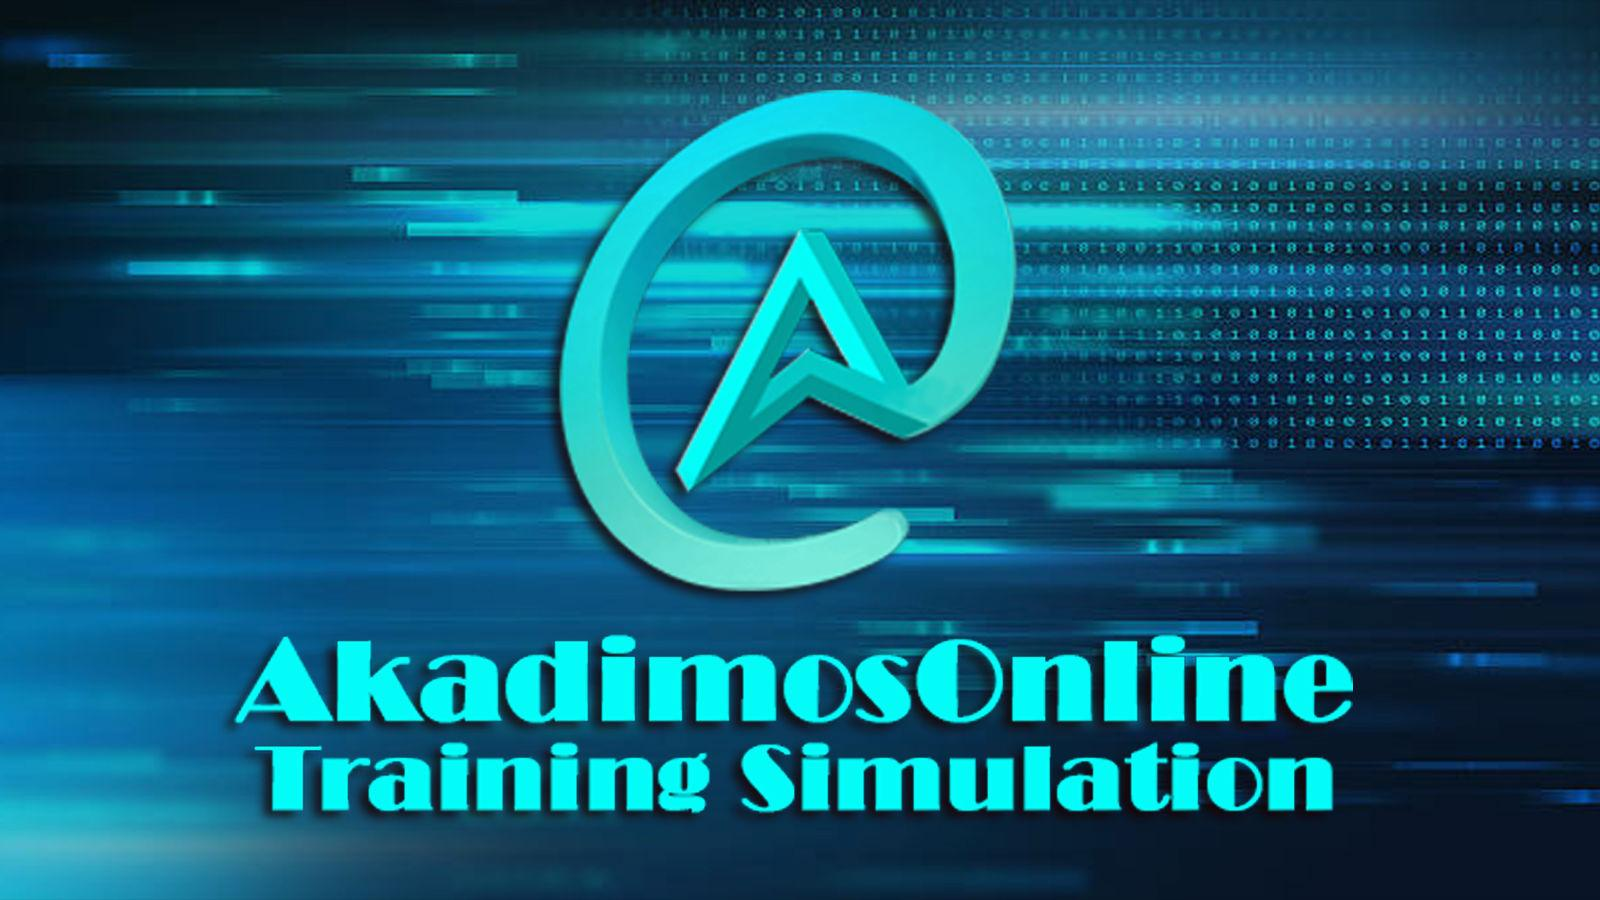 Ακάδημος Online Training Simulation